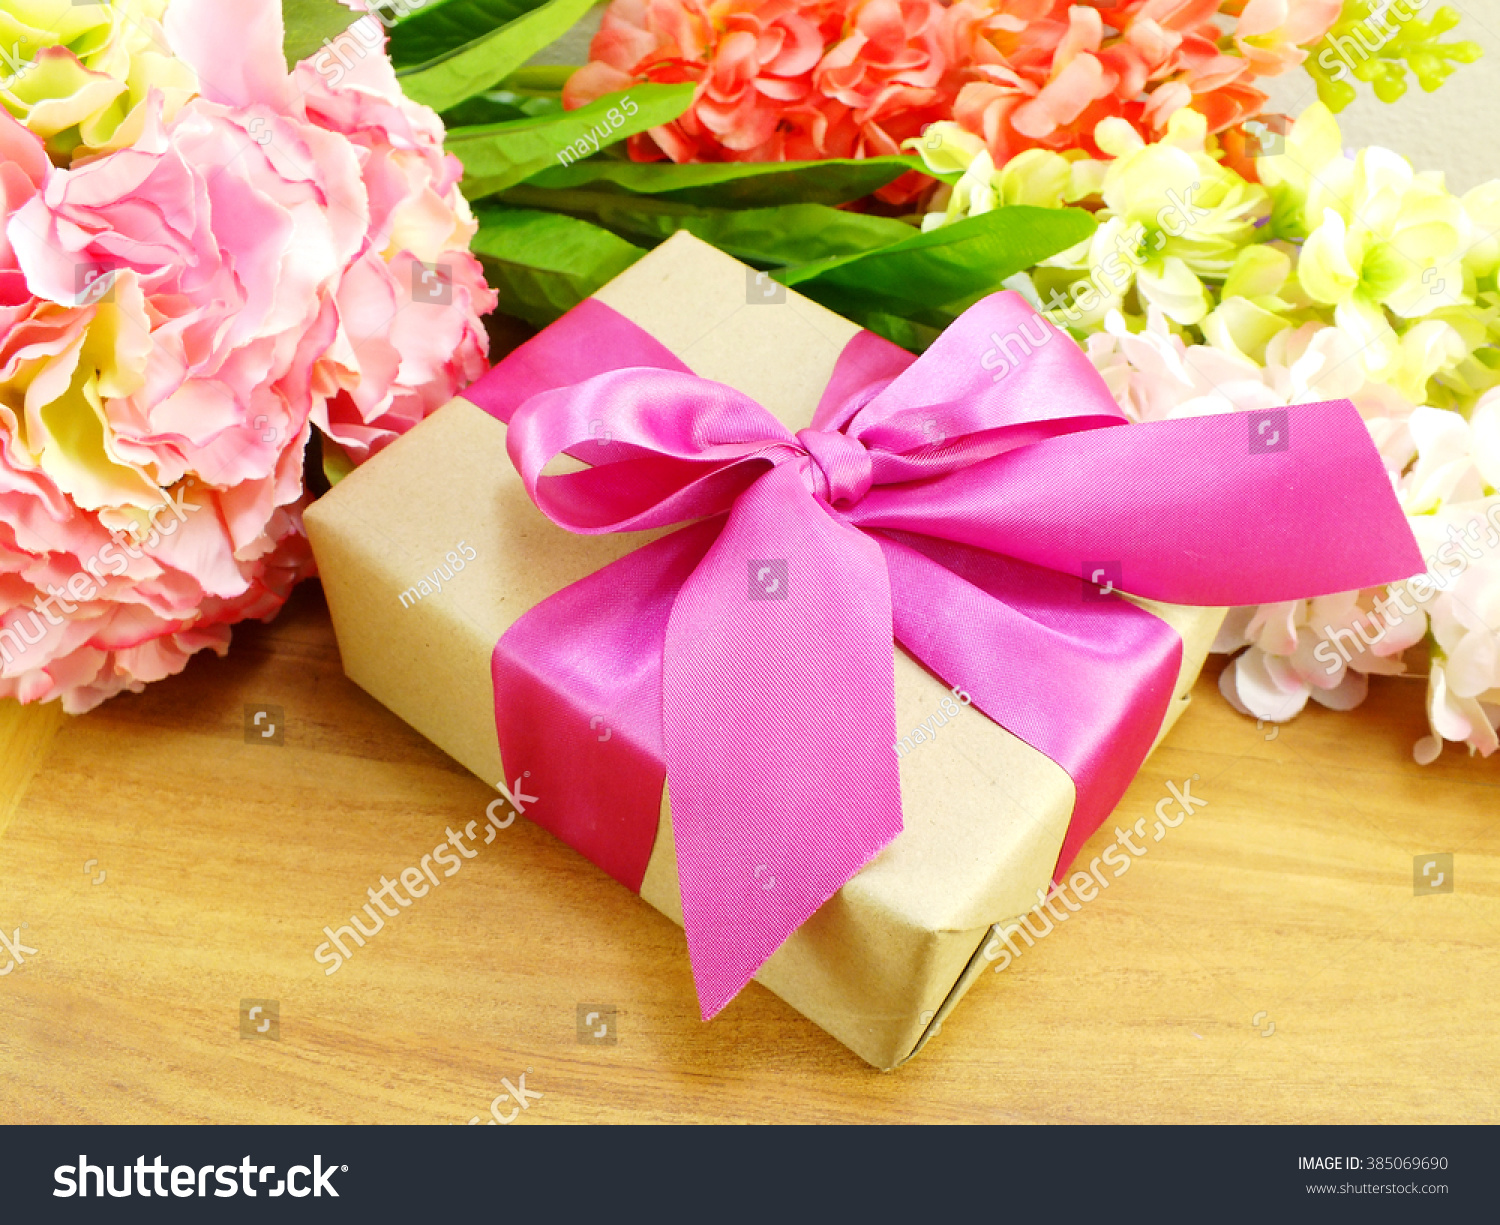 Gifts and beautiful bouquet of flowers for mom for mother day or id 385069690 izmirmasajfo